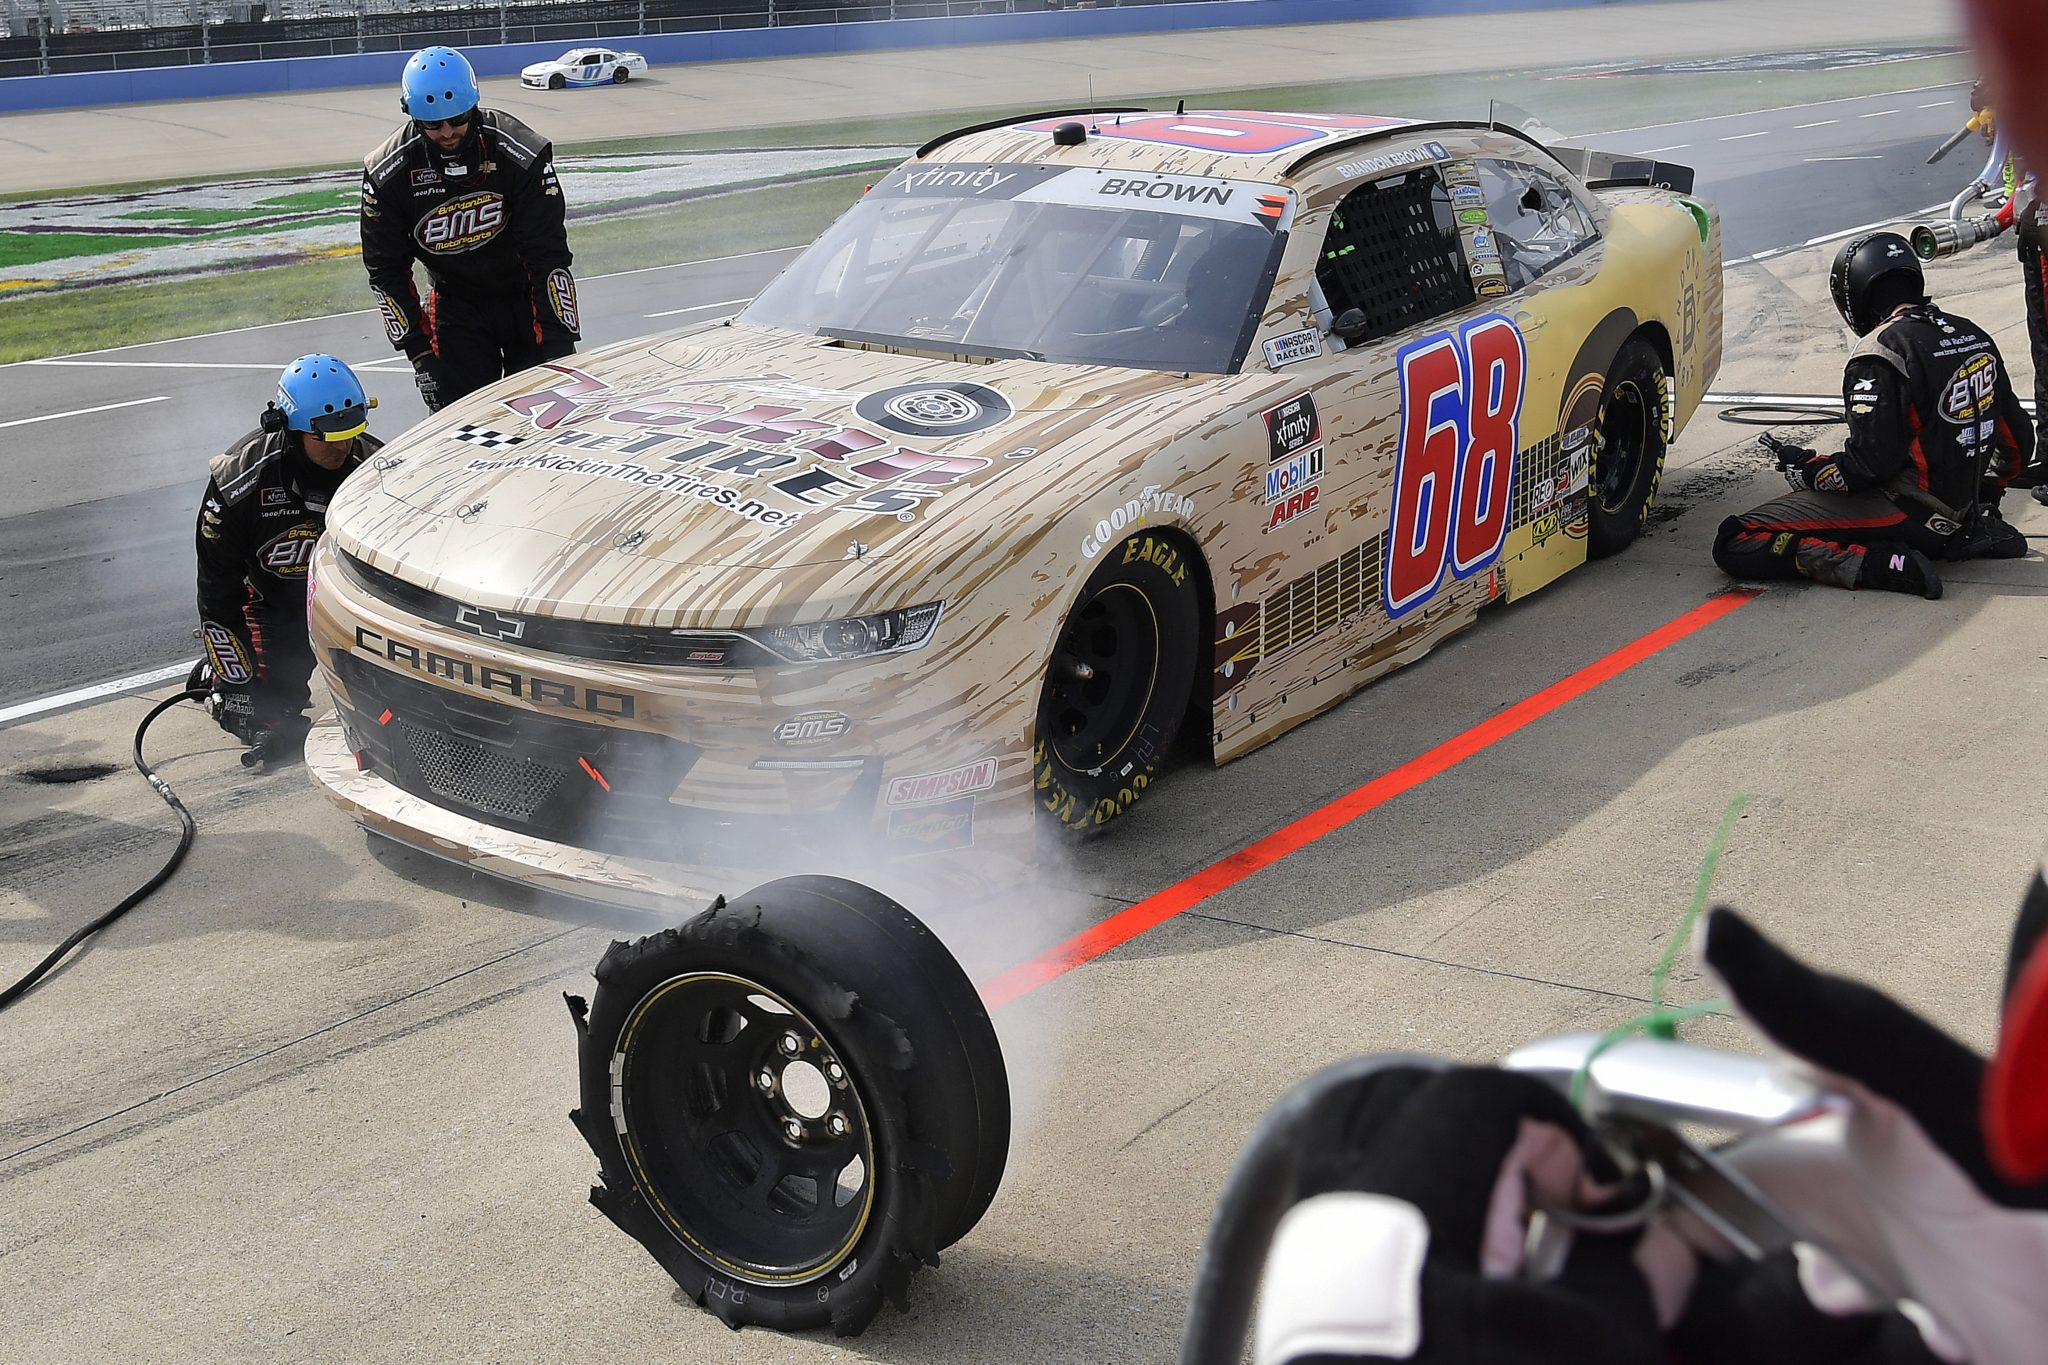 LEBANON, TENNESSEE - JUNE 19: Brandon Brown, driver of the #68 KickinTheTires.net/Brandon Davis Music Chevrolet, pits during the NASCAR Xfinity Series Tennessee Lottery 250 at Nashville Superspeedway on June 19, 2021 in Lebanon, Tennessee. (Photo by Logan Riely/Getty Images) | Getty Images